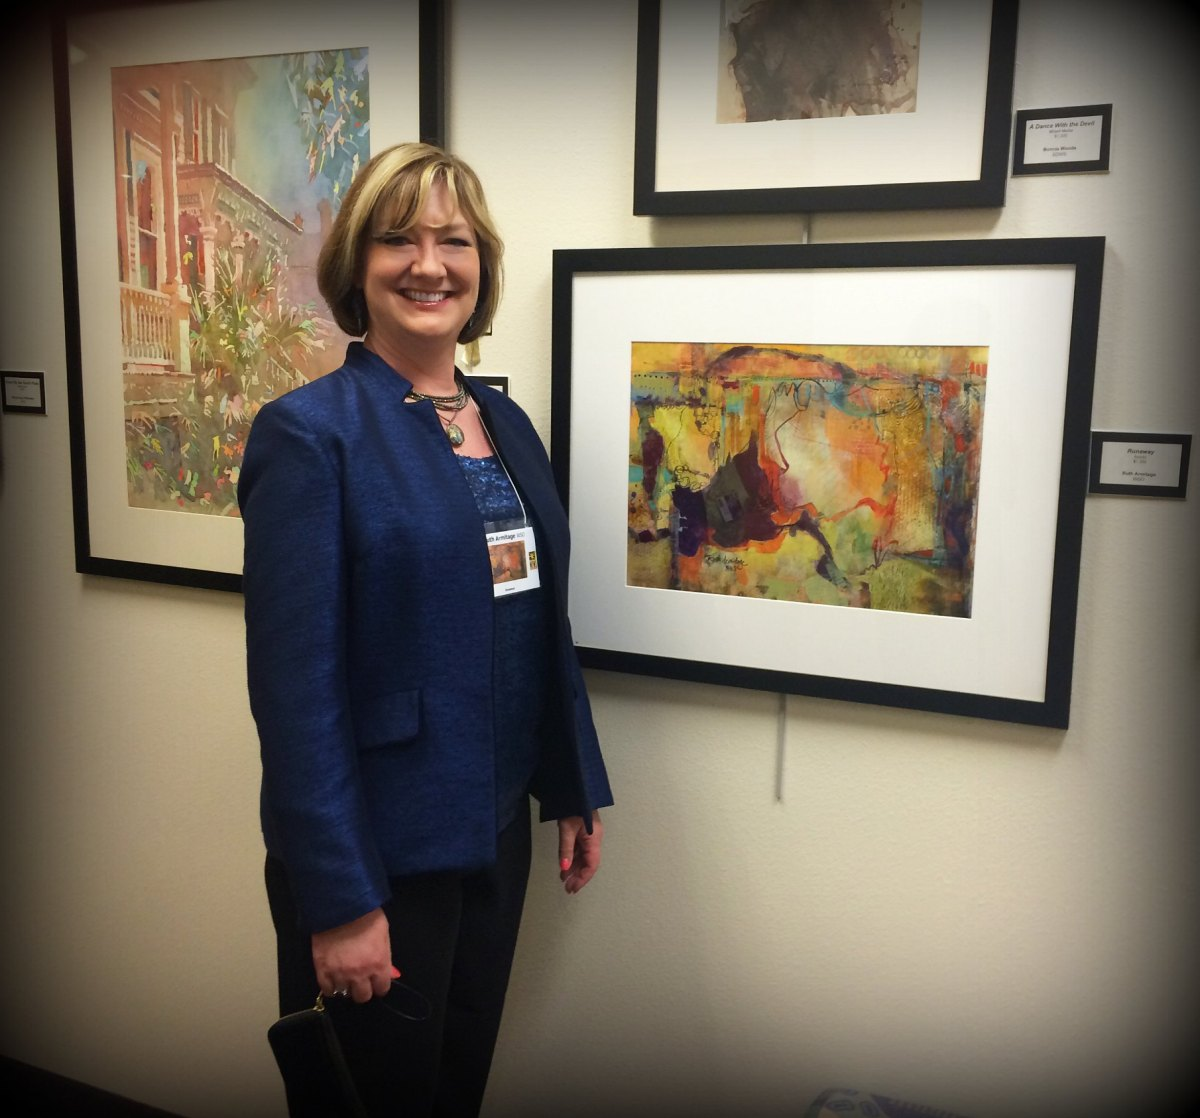 39th Annual Western Federation of Watercolor Societies Exhibition